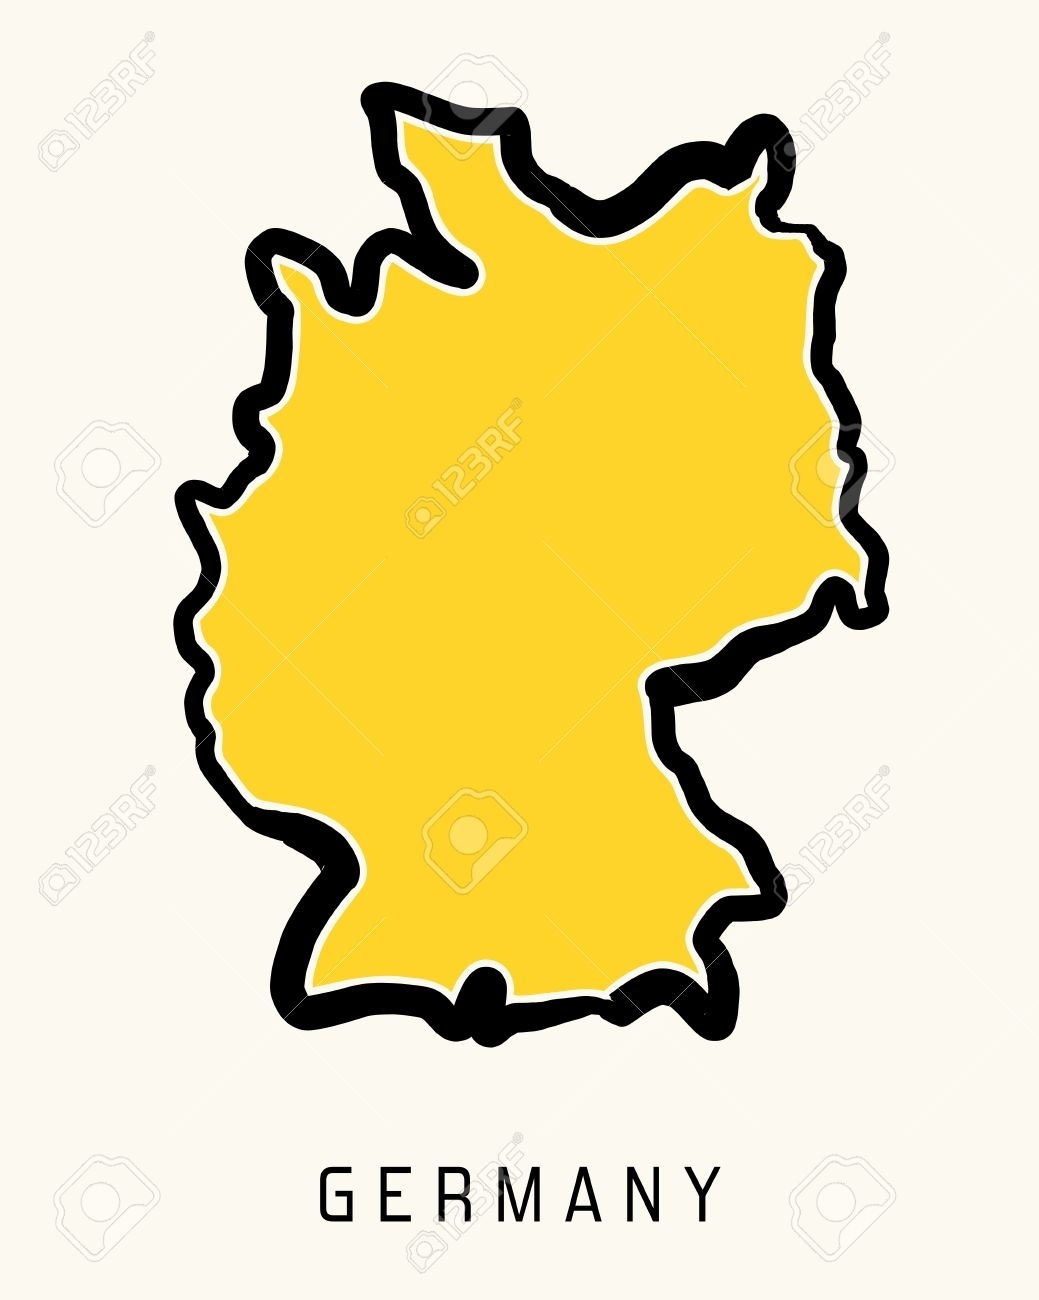 Germany Simple Map Outline - Simplified Country Shape Map Vector. with Germany Country Map Outline